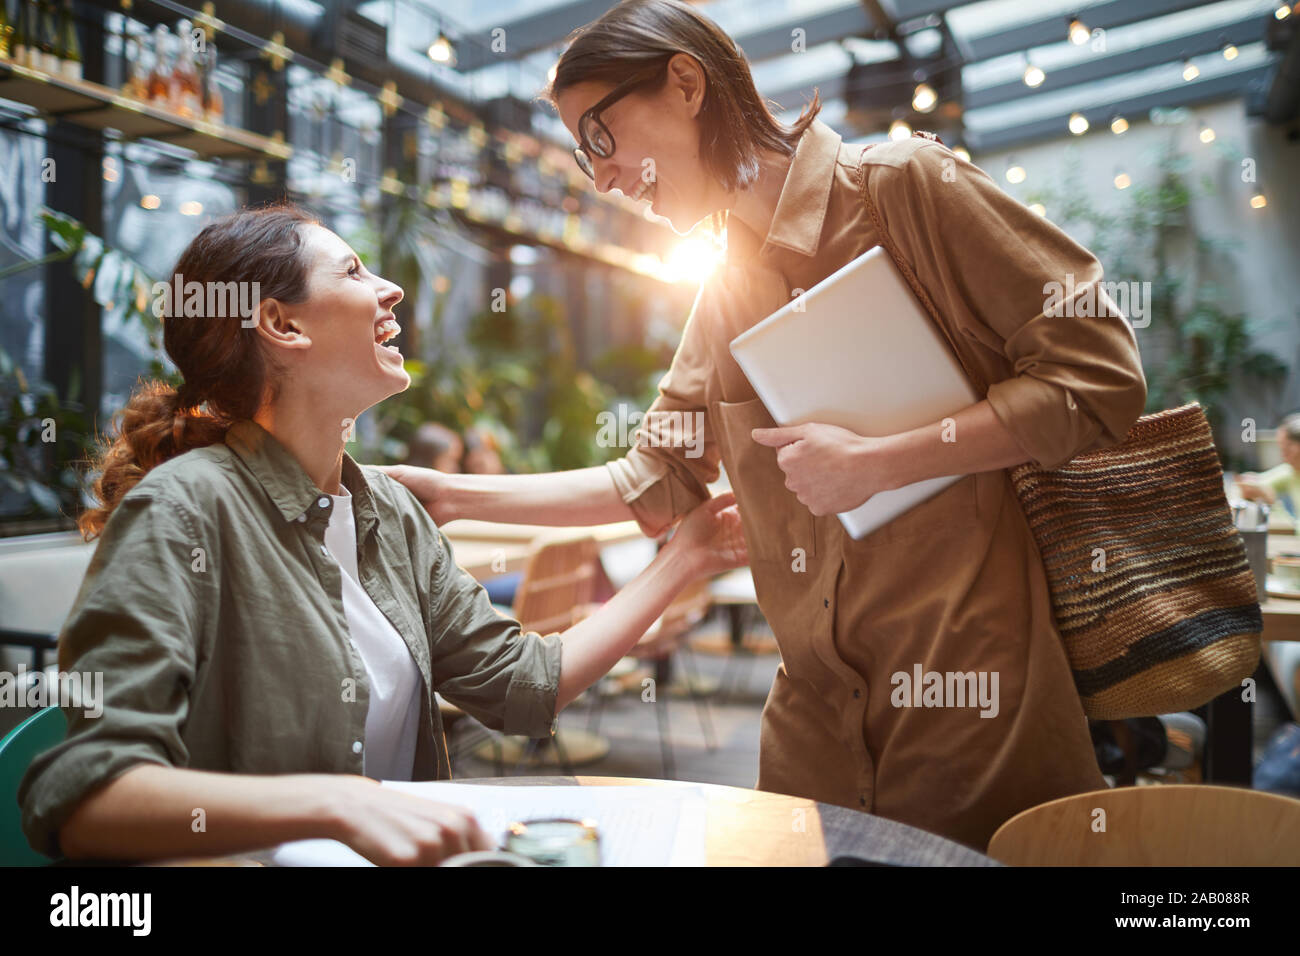 Side view portrait of two young women greeting each other joyfully during meeting in cafe on outdoor terrace decorated with lights Stock Photo